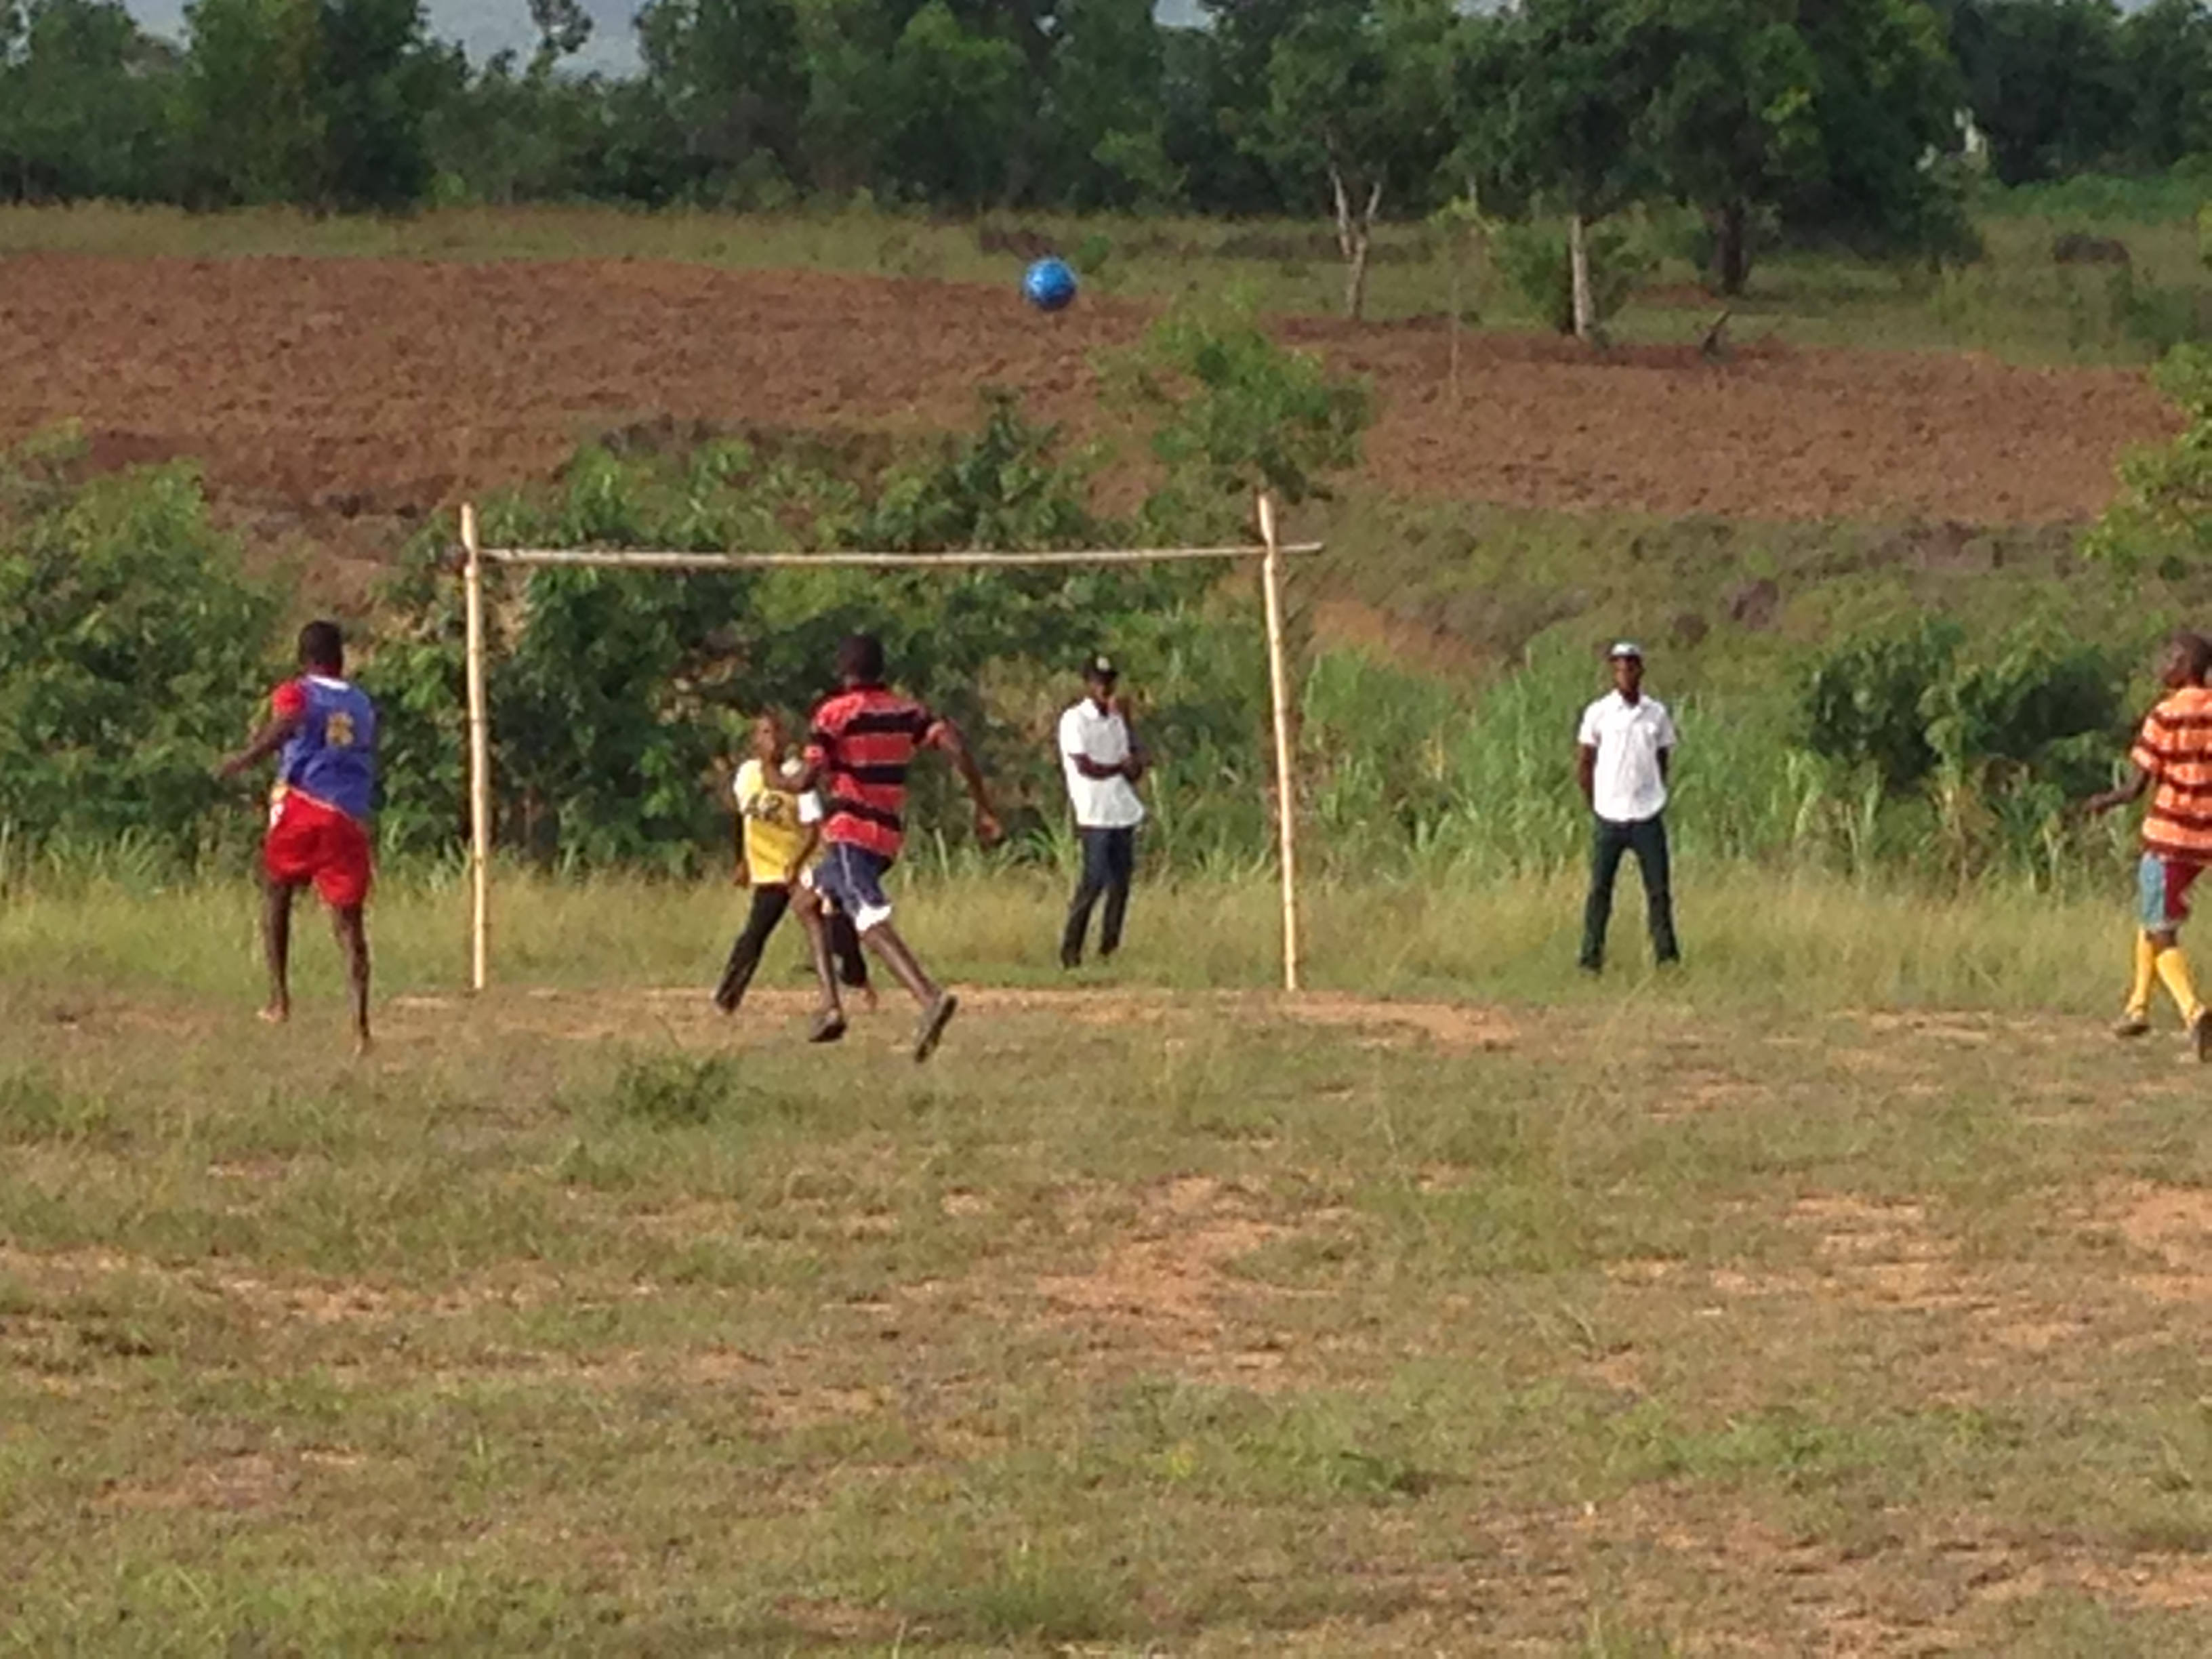 Soccer in Haiti with a Ball Project soccer ball & handmade goals 2014